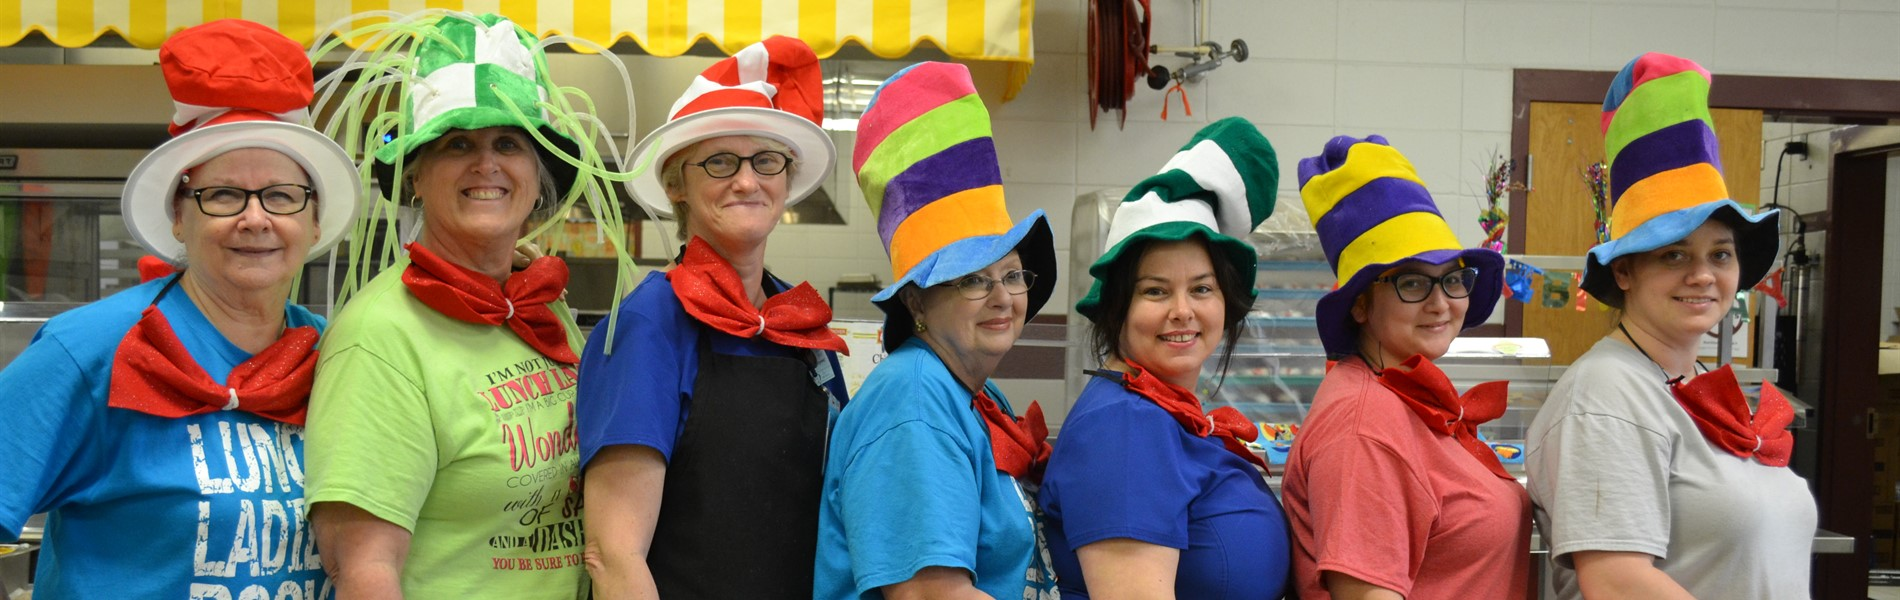 Cafeteria workers wearing Cat in the Hat hats